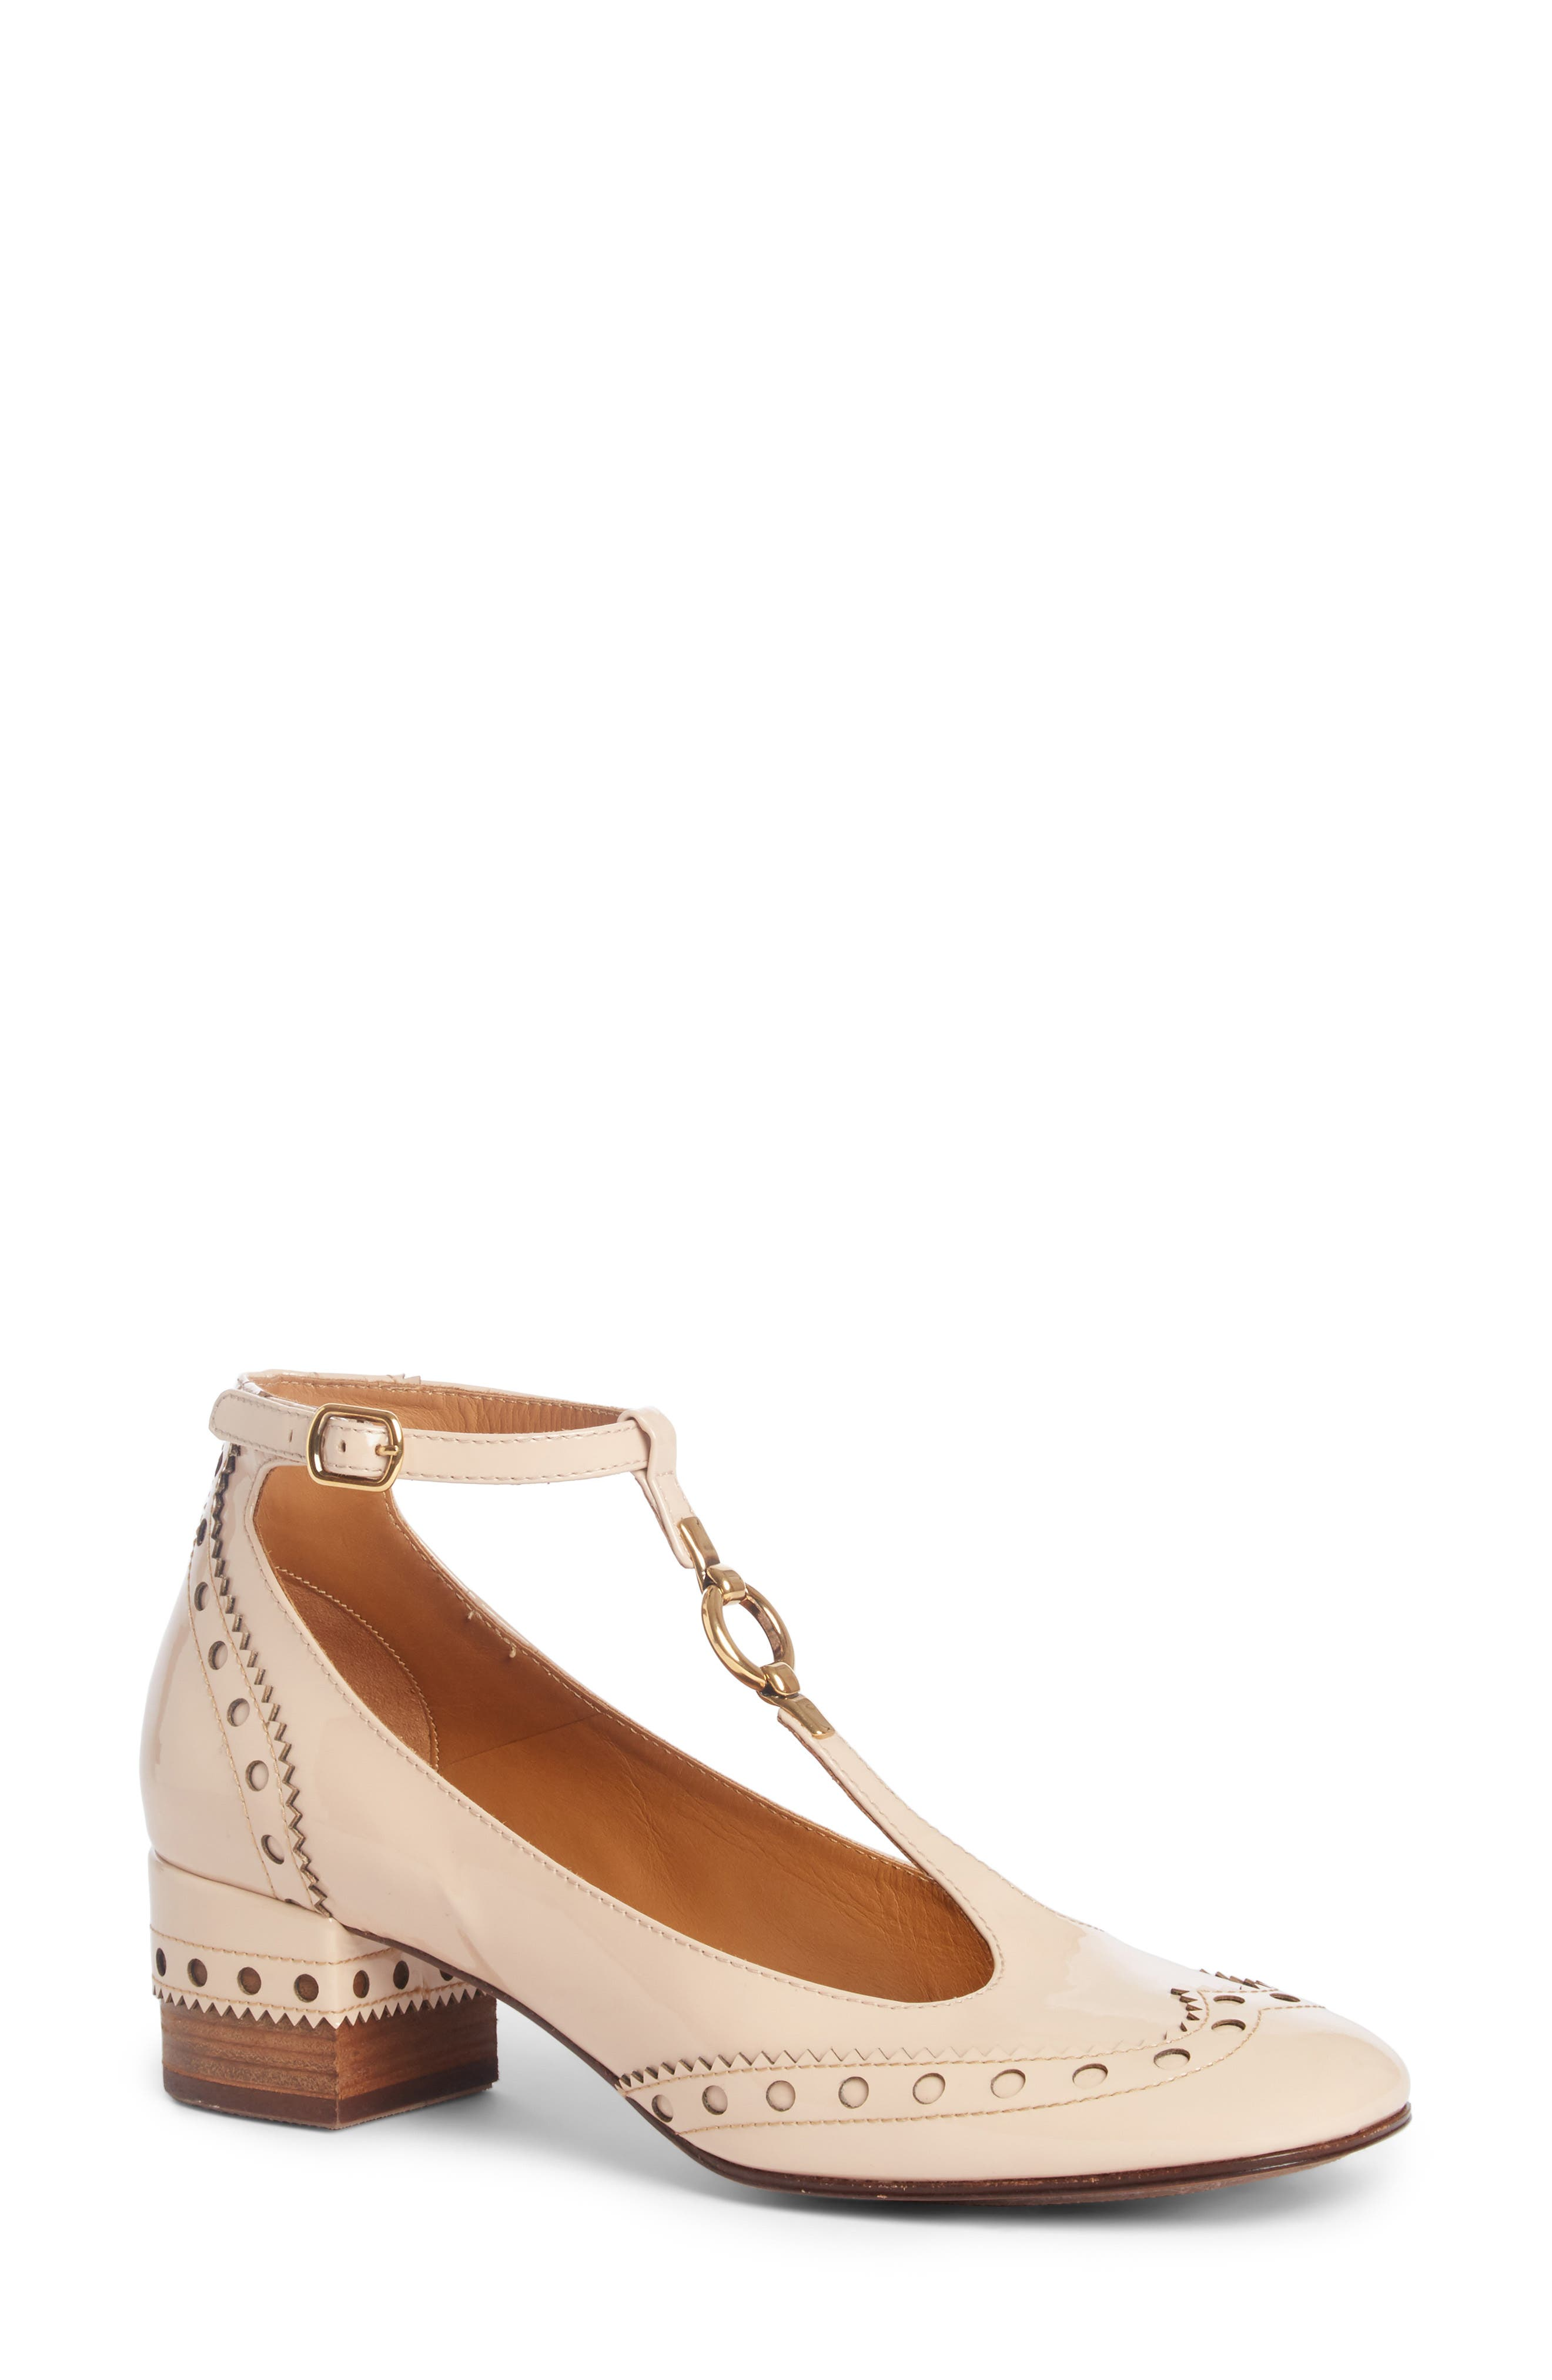 Alternate Image 1 Selected - Chloé Perry Wingtip T-Strap Pump (Women)